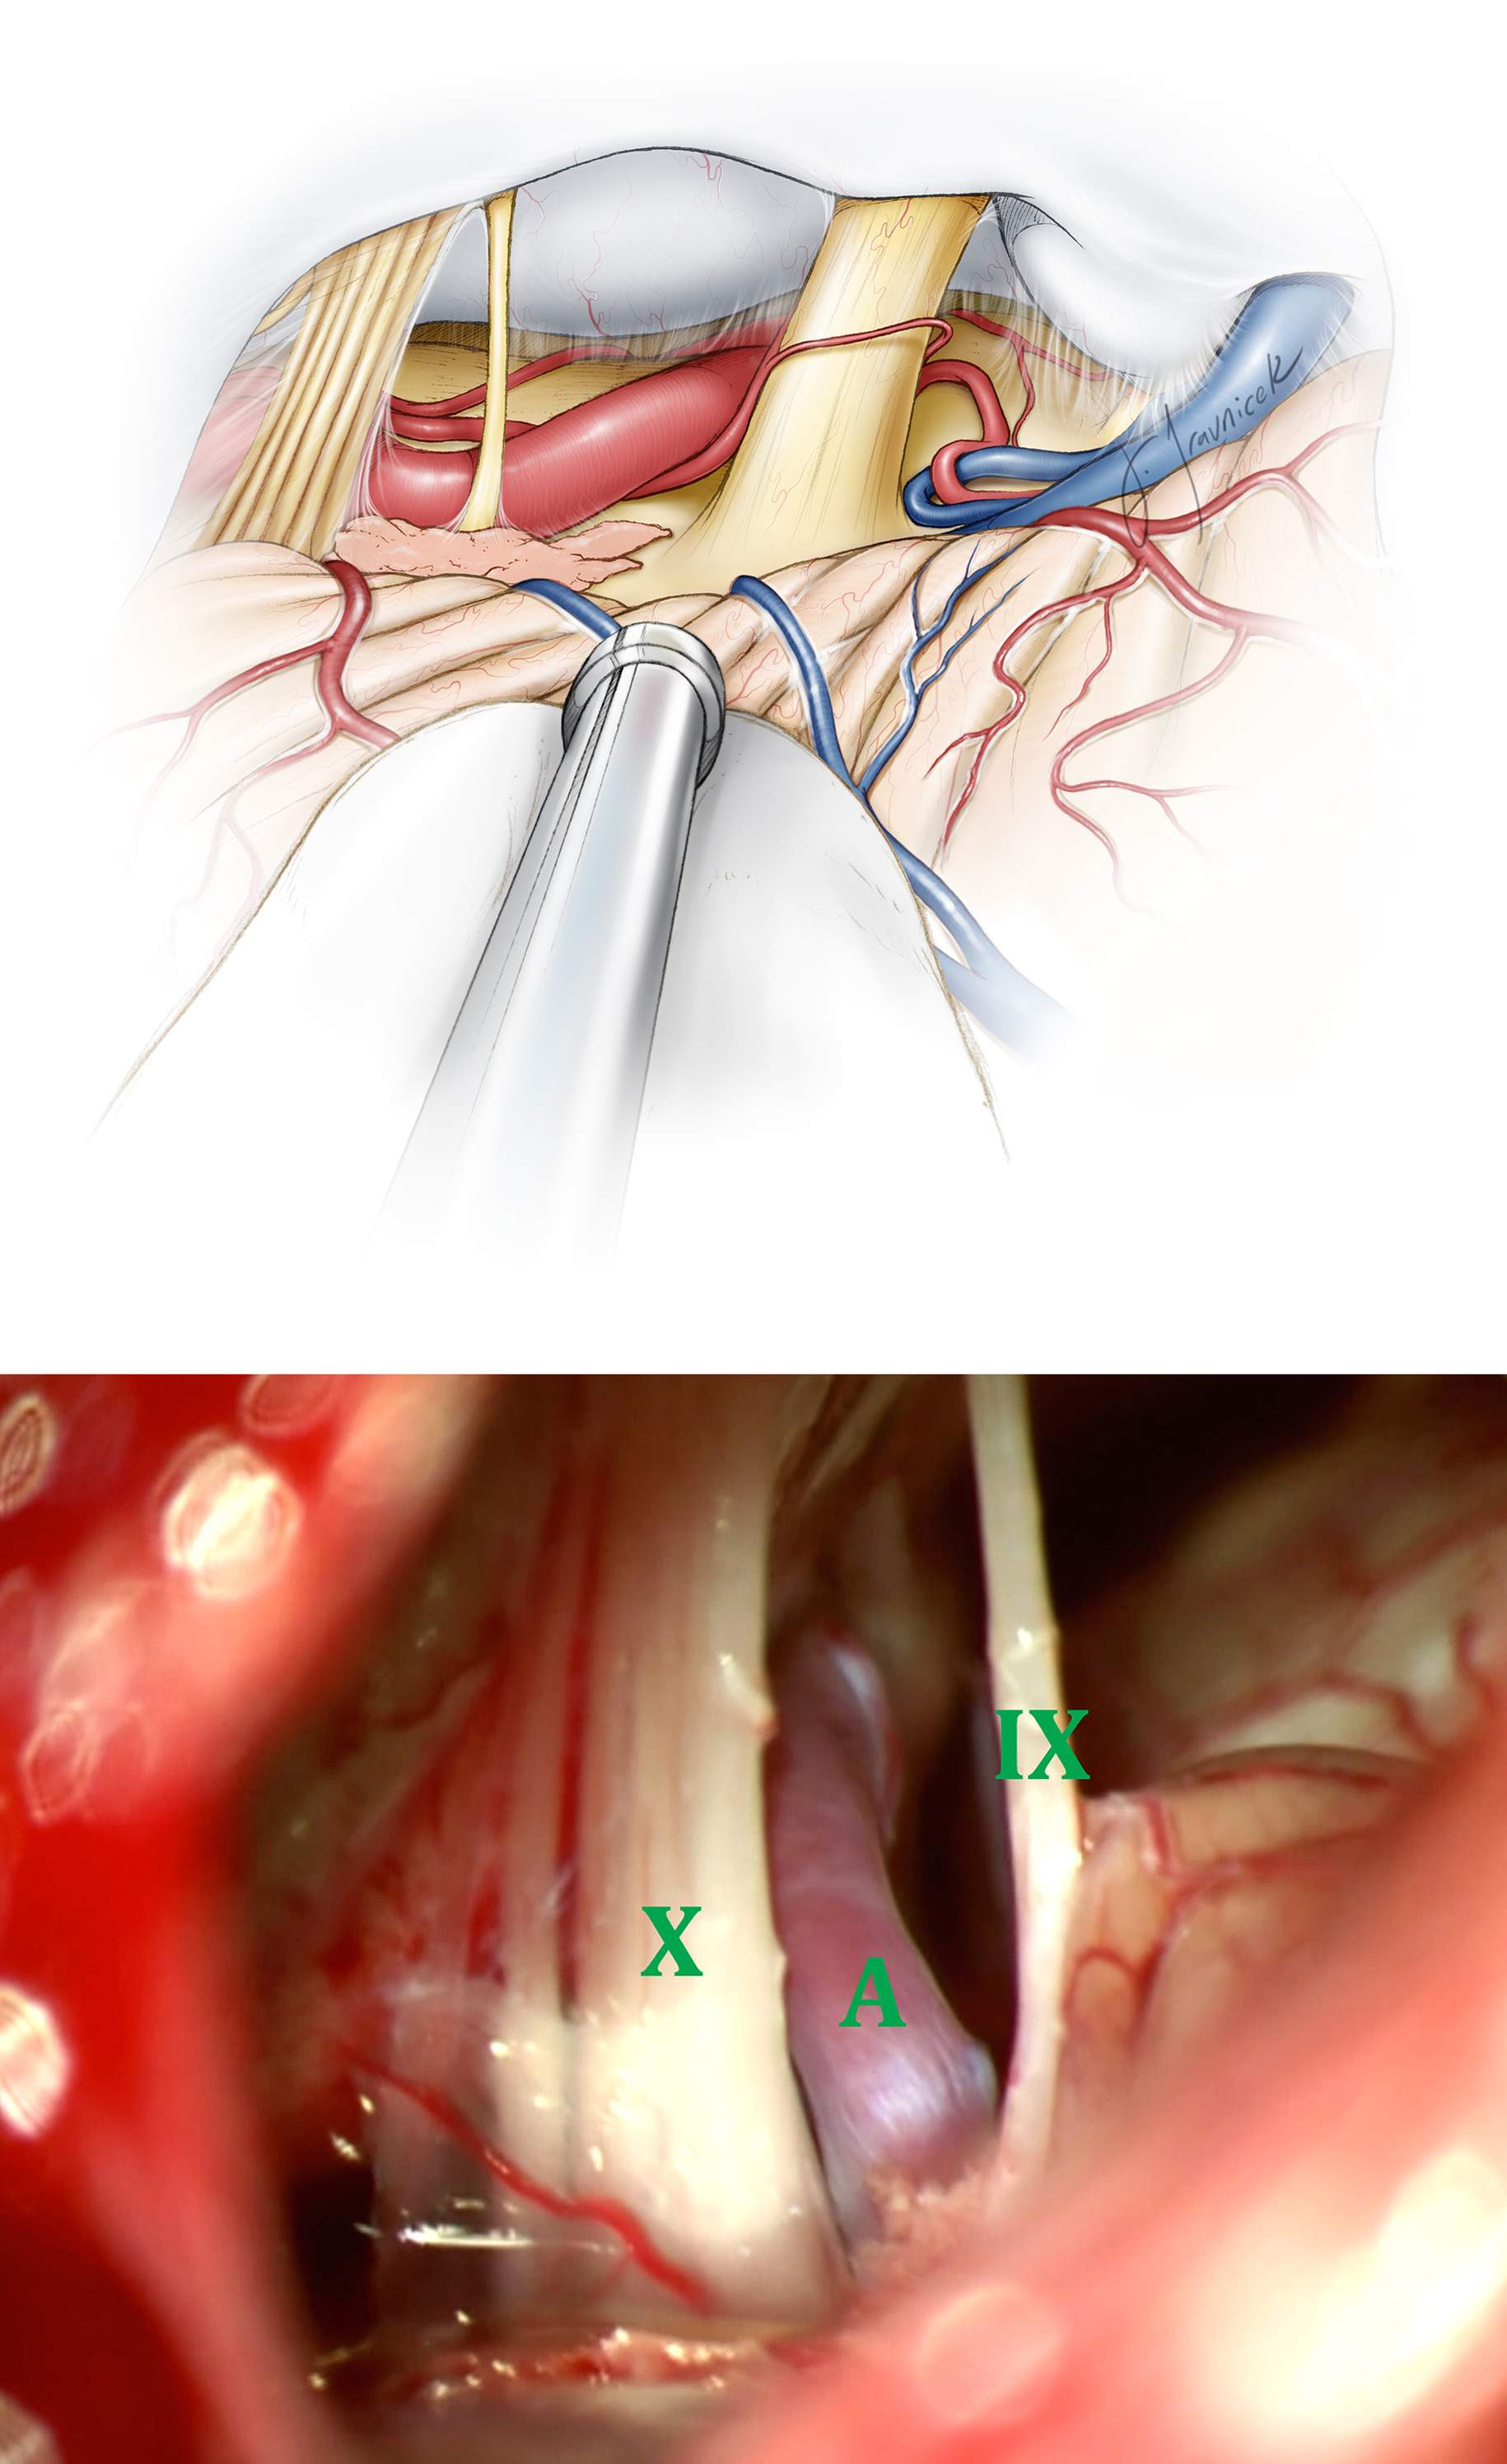 Figure 10: Once the arachnoid membranes are dissected, the anatomy of the lower cranial nerves in relation to CN VII/VIII complex should be easily appreciated (top image). The offending artery (A) is usually apparent between CN's IX and X. The arachnoid bands between CN's IX and X must be sharply transected and the nerves clearly identified and separated (bottom image). Given the variations that could be present, it is important to correctly identify cranial nerves before CN IX transection and CN X decompression is undertaken.